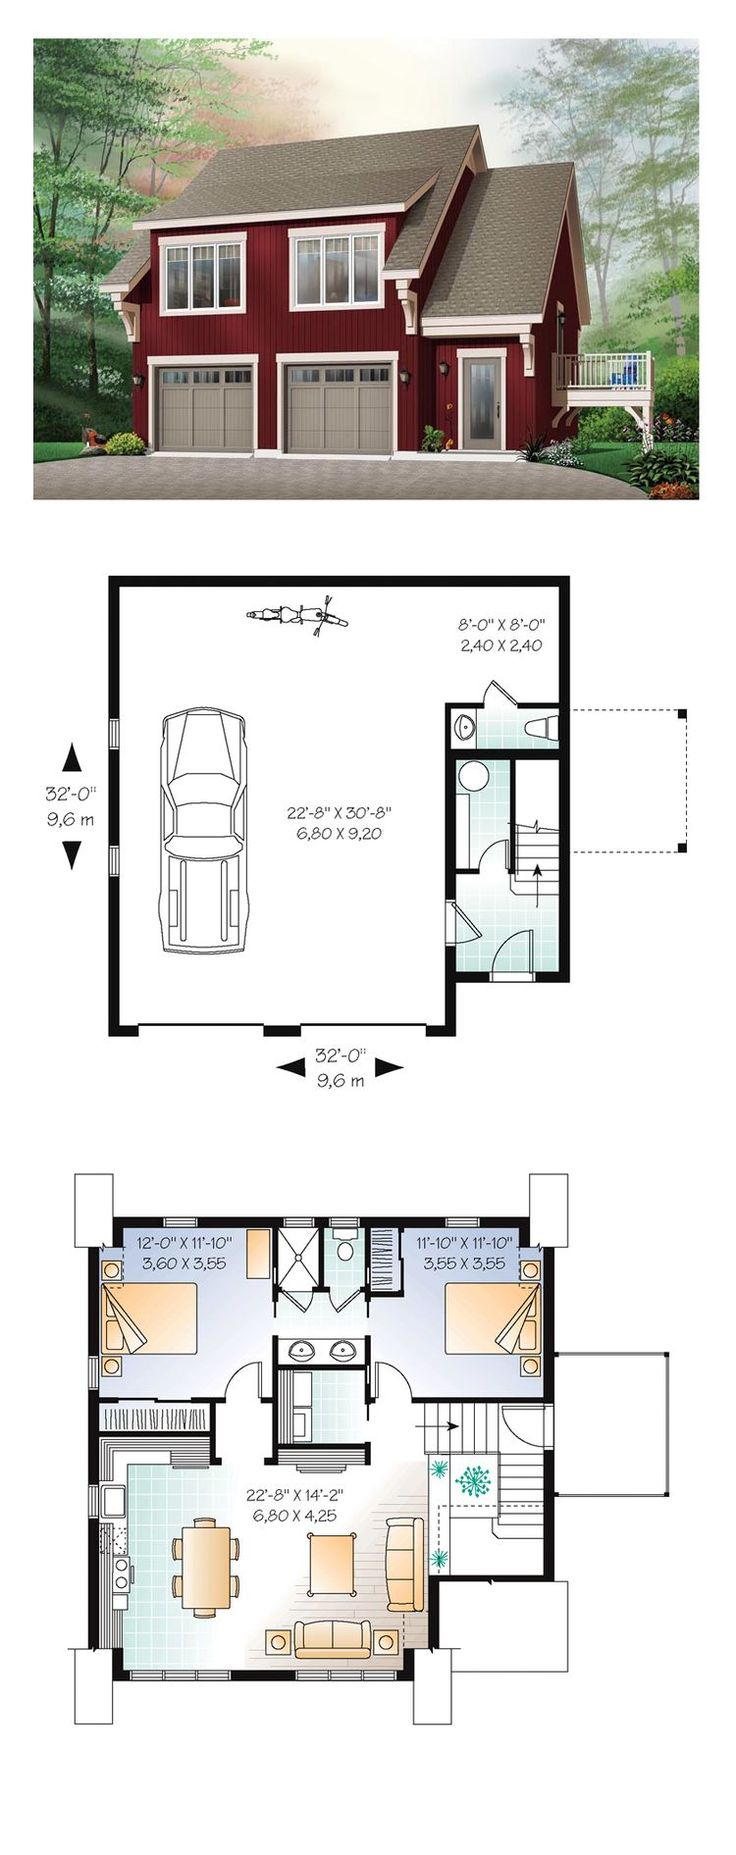 Best 20 car garage ideas on pinterest for Double garage apartment plans